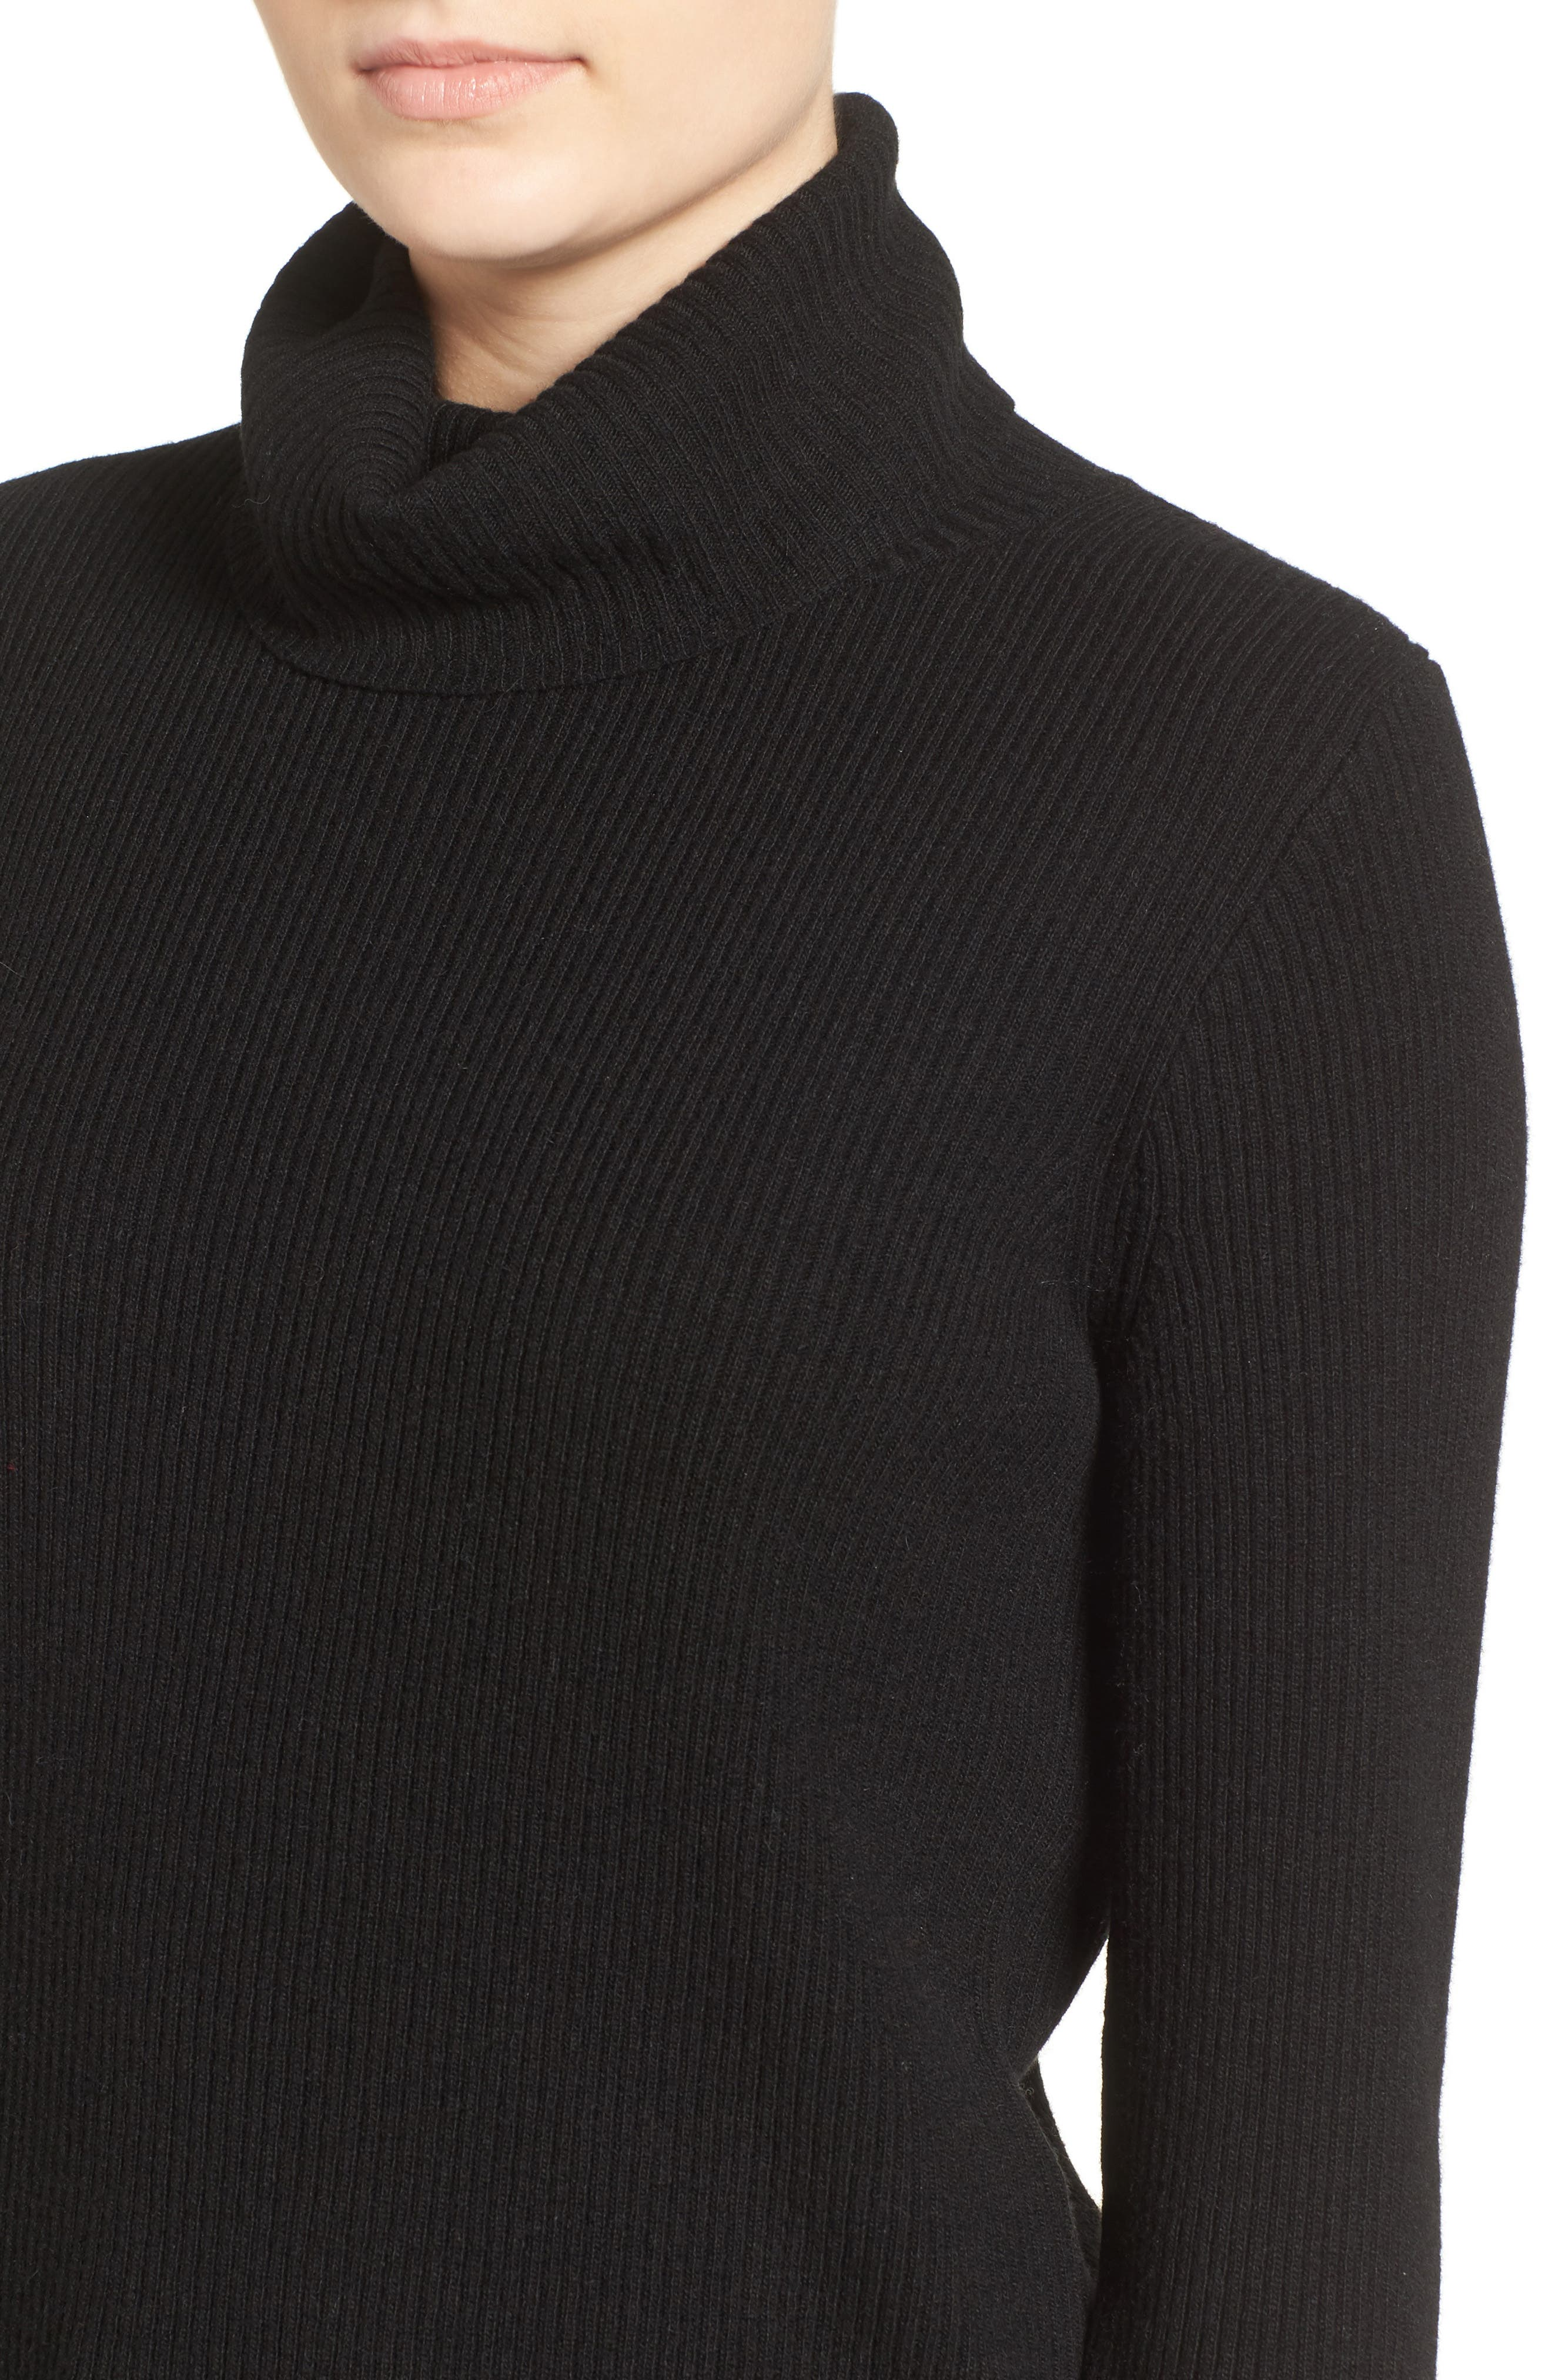 MADEWELL,                             Turtleneck Sweater,                             Alternate thumbnail 4, color,                             001